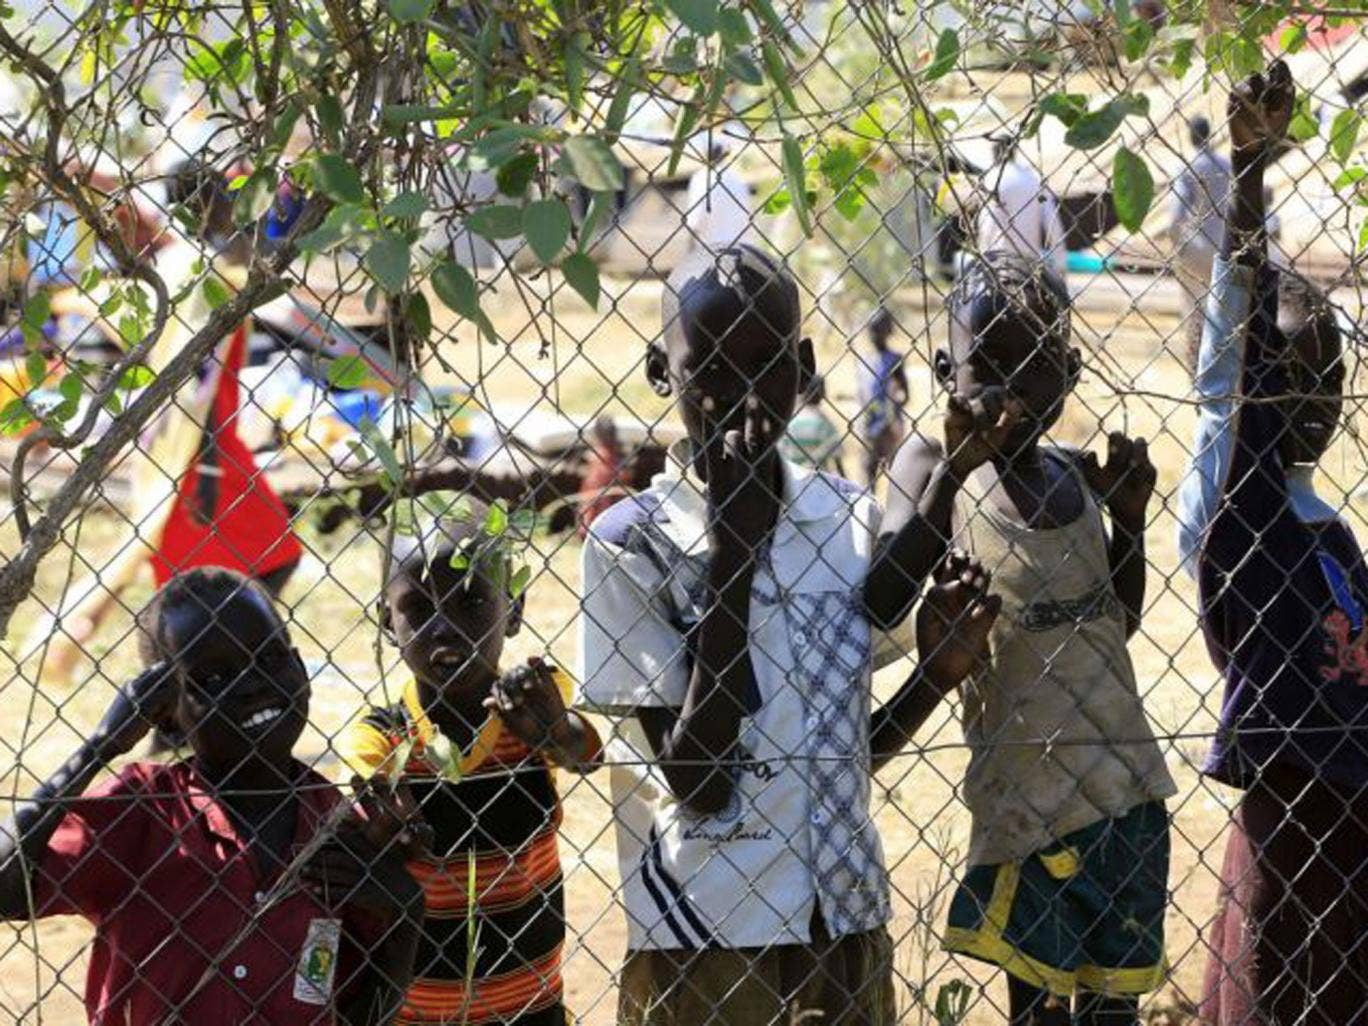 Children displaced by the fighting in South Sudan wait behind the fence of the United Nations Mission facility on the outskirts of the capital Juba. Tens of thousands of refugees have fled the crisis